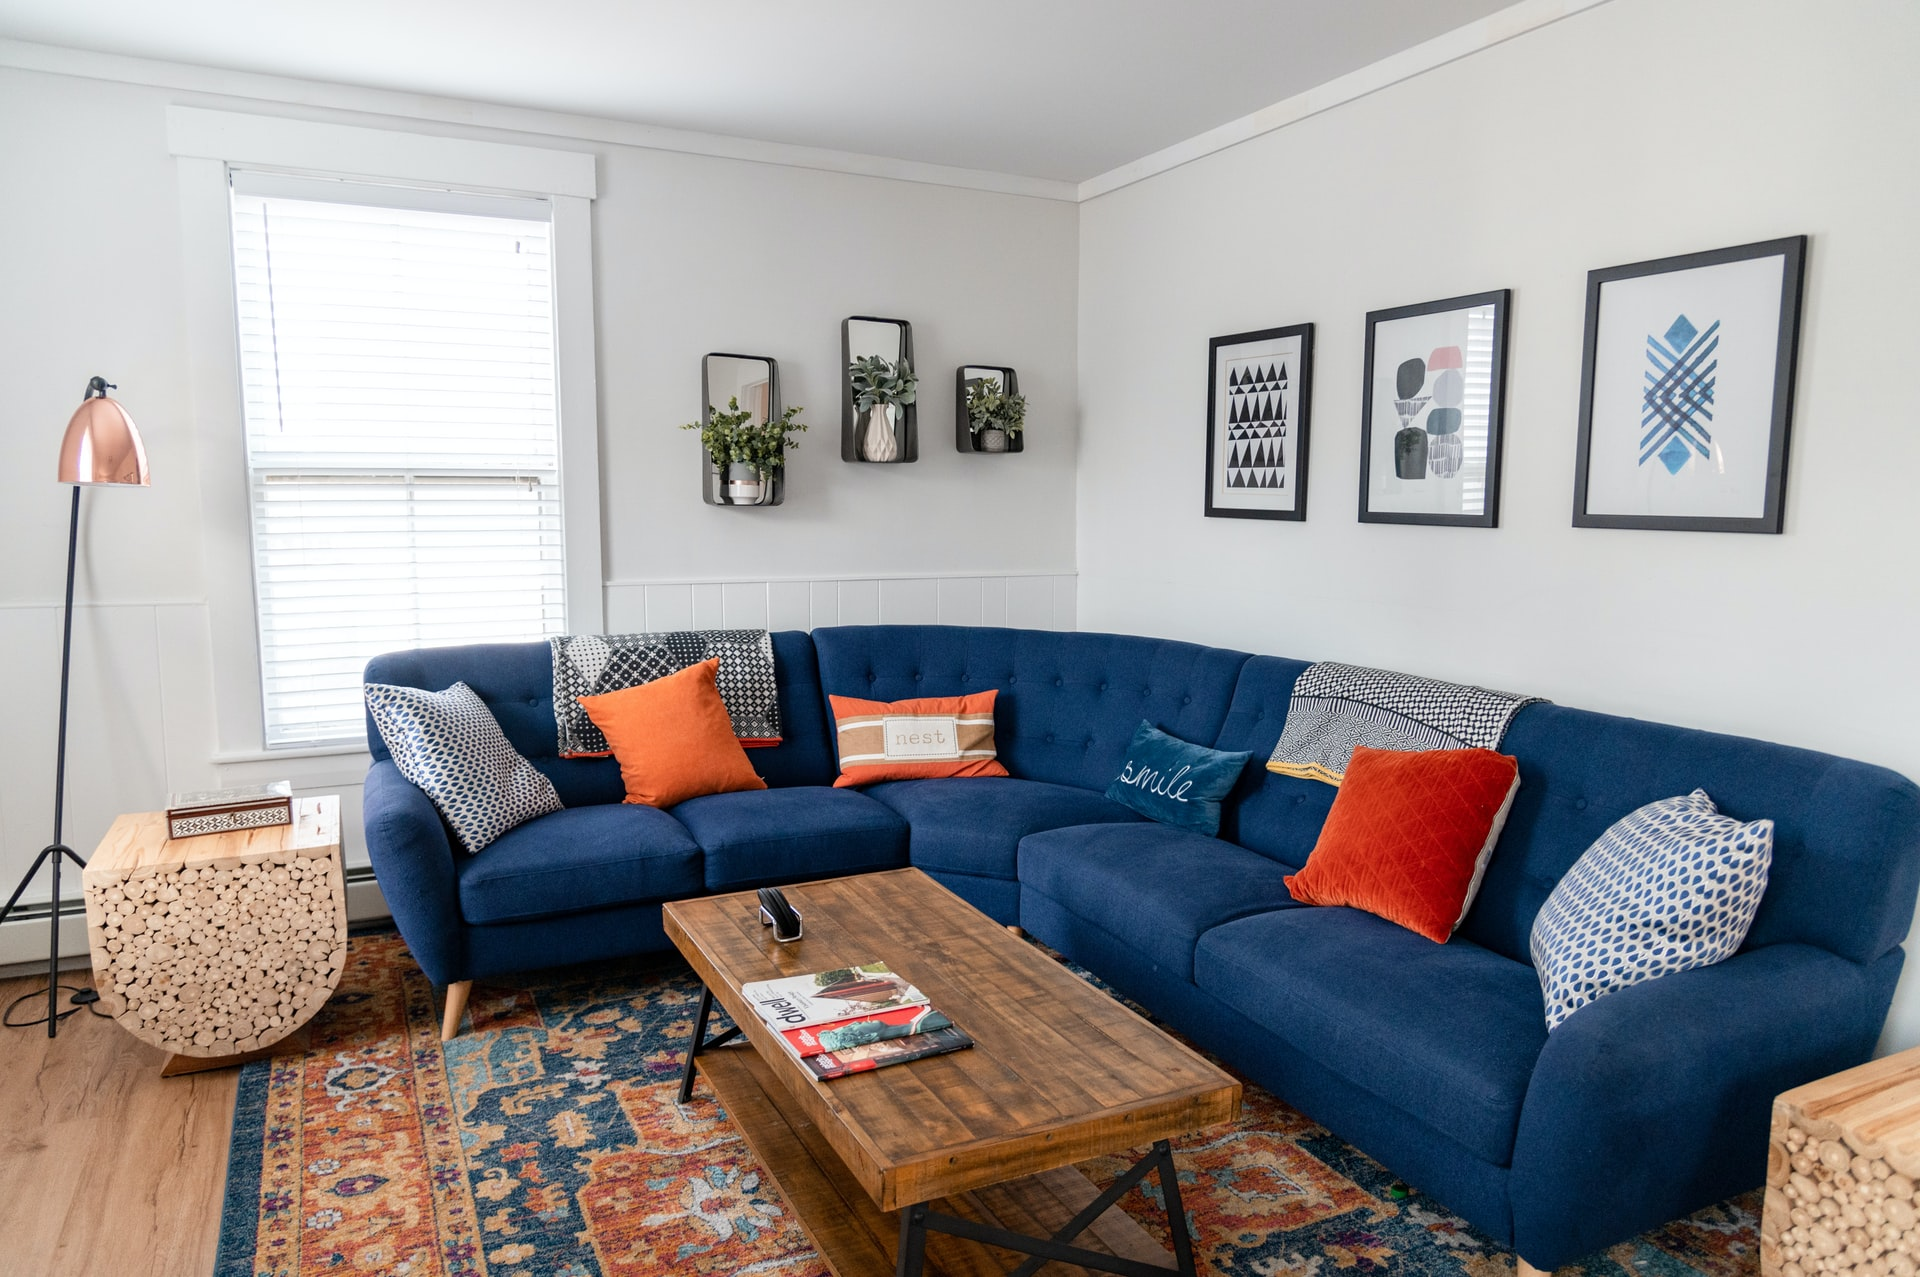 Safety tips for moving heavy furniture long-distance